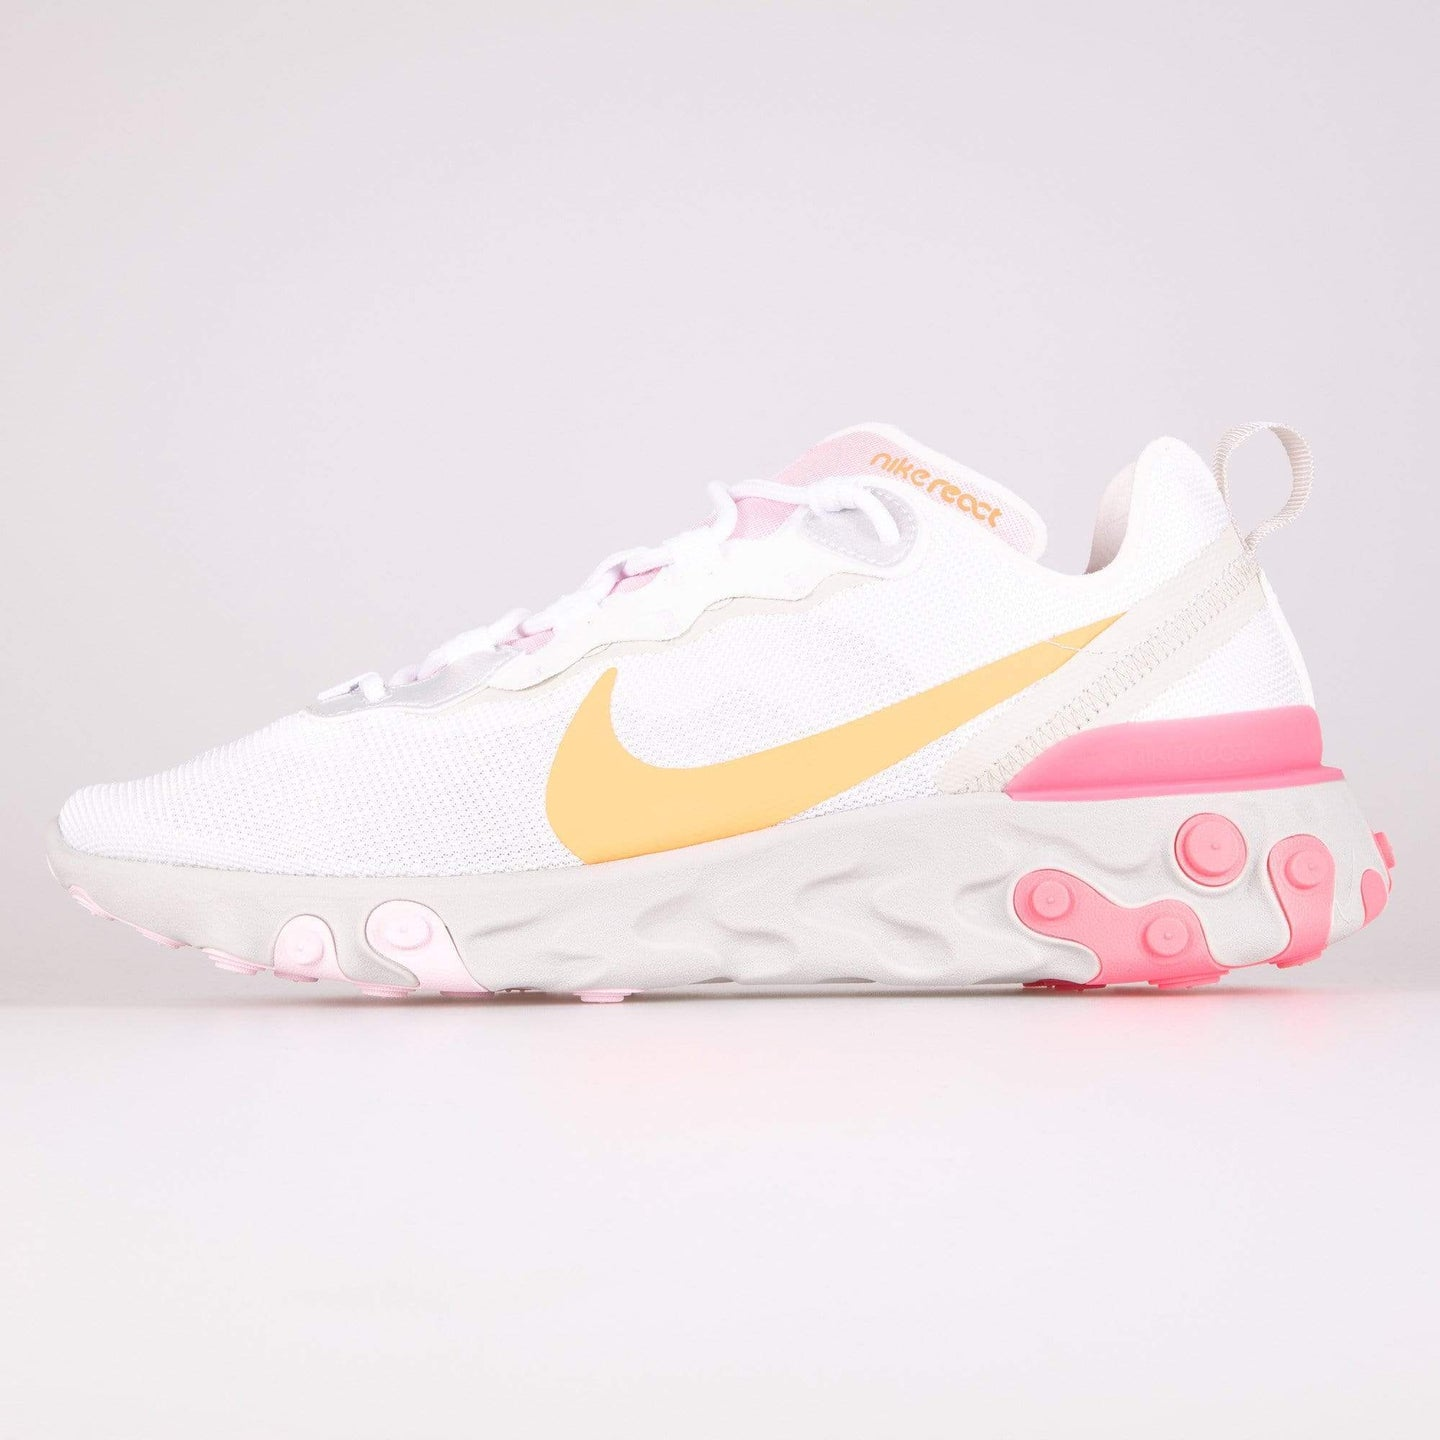 Nike Wmns React Element 55 - White / Digital Pink / Hyper Crimson UK 5 CV30351005 193658325257 Nike Trainers